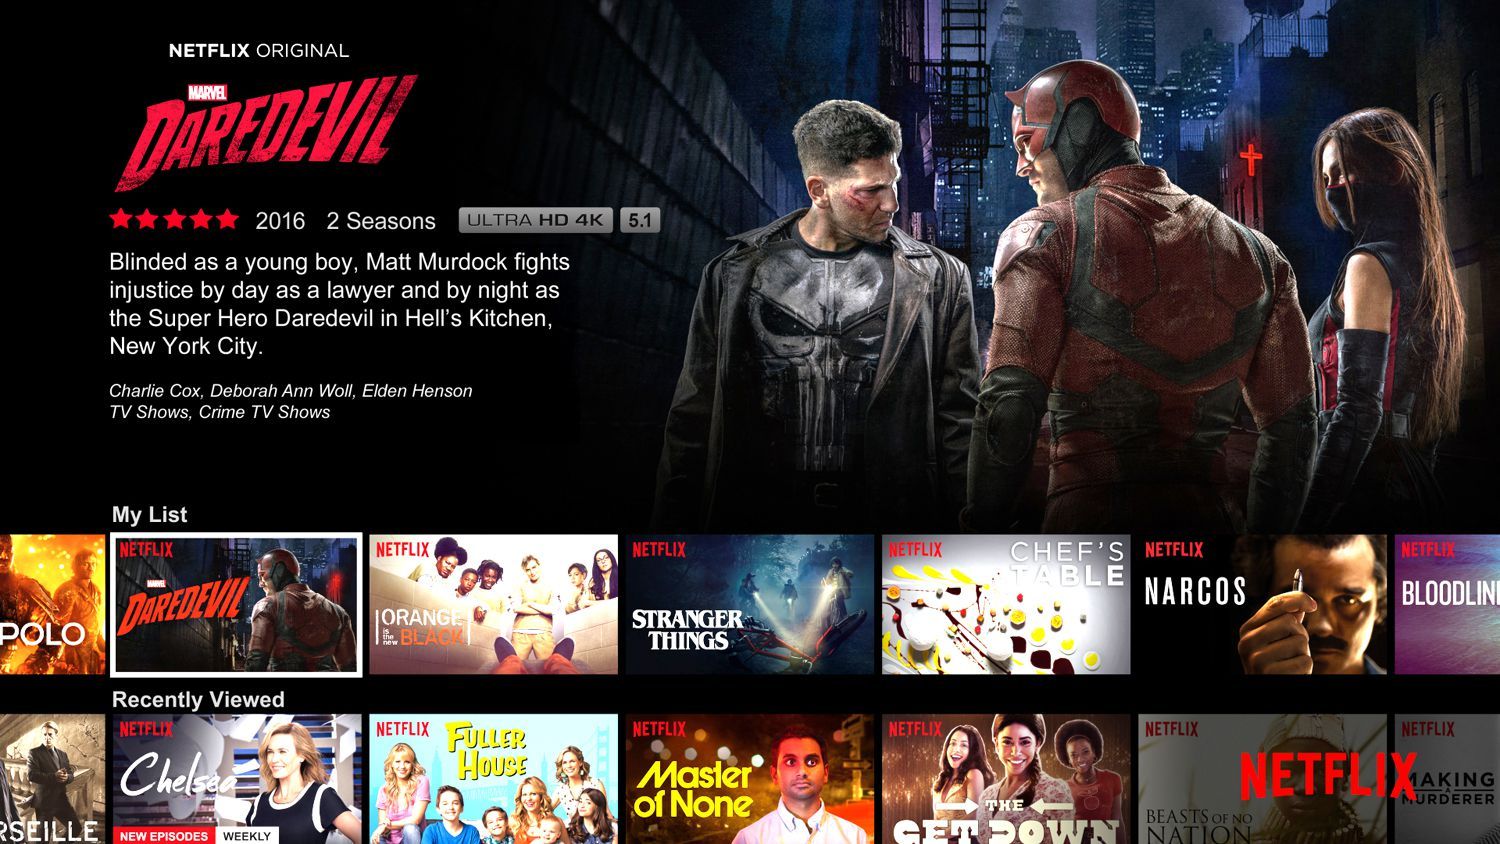 Streaming Netflix In K What You Need To Know - The full netflix library could soon be available to everyone